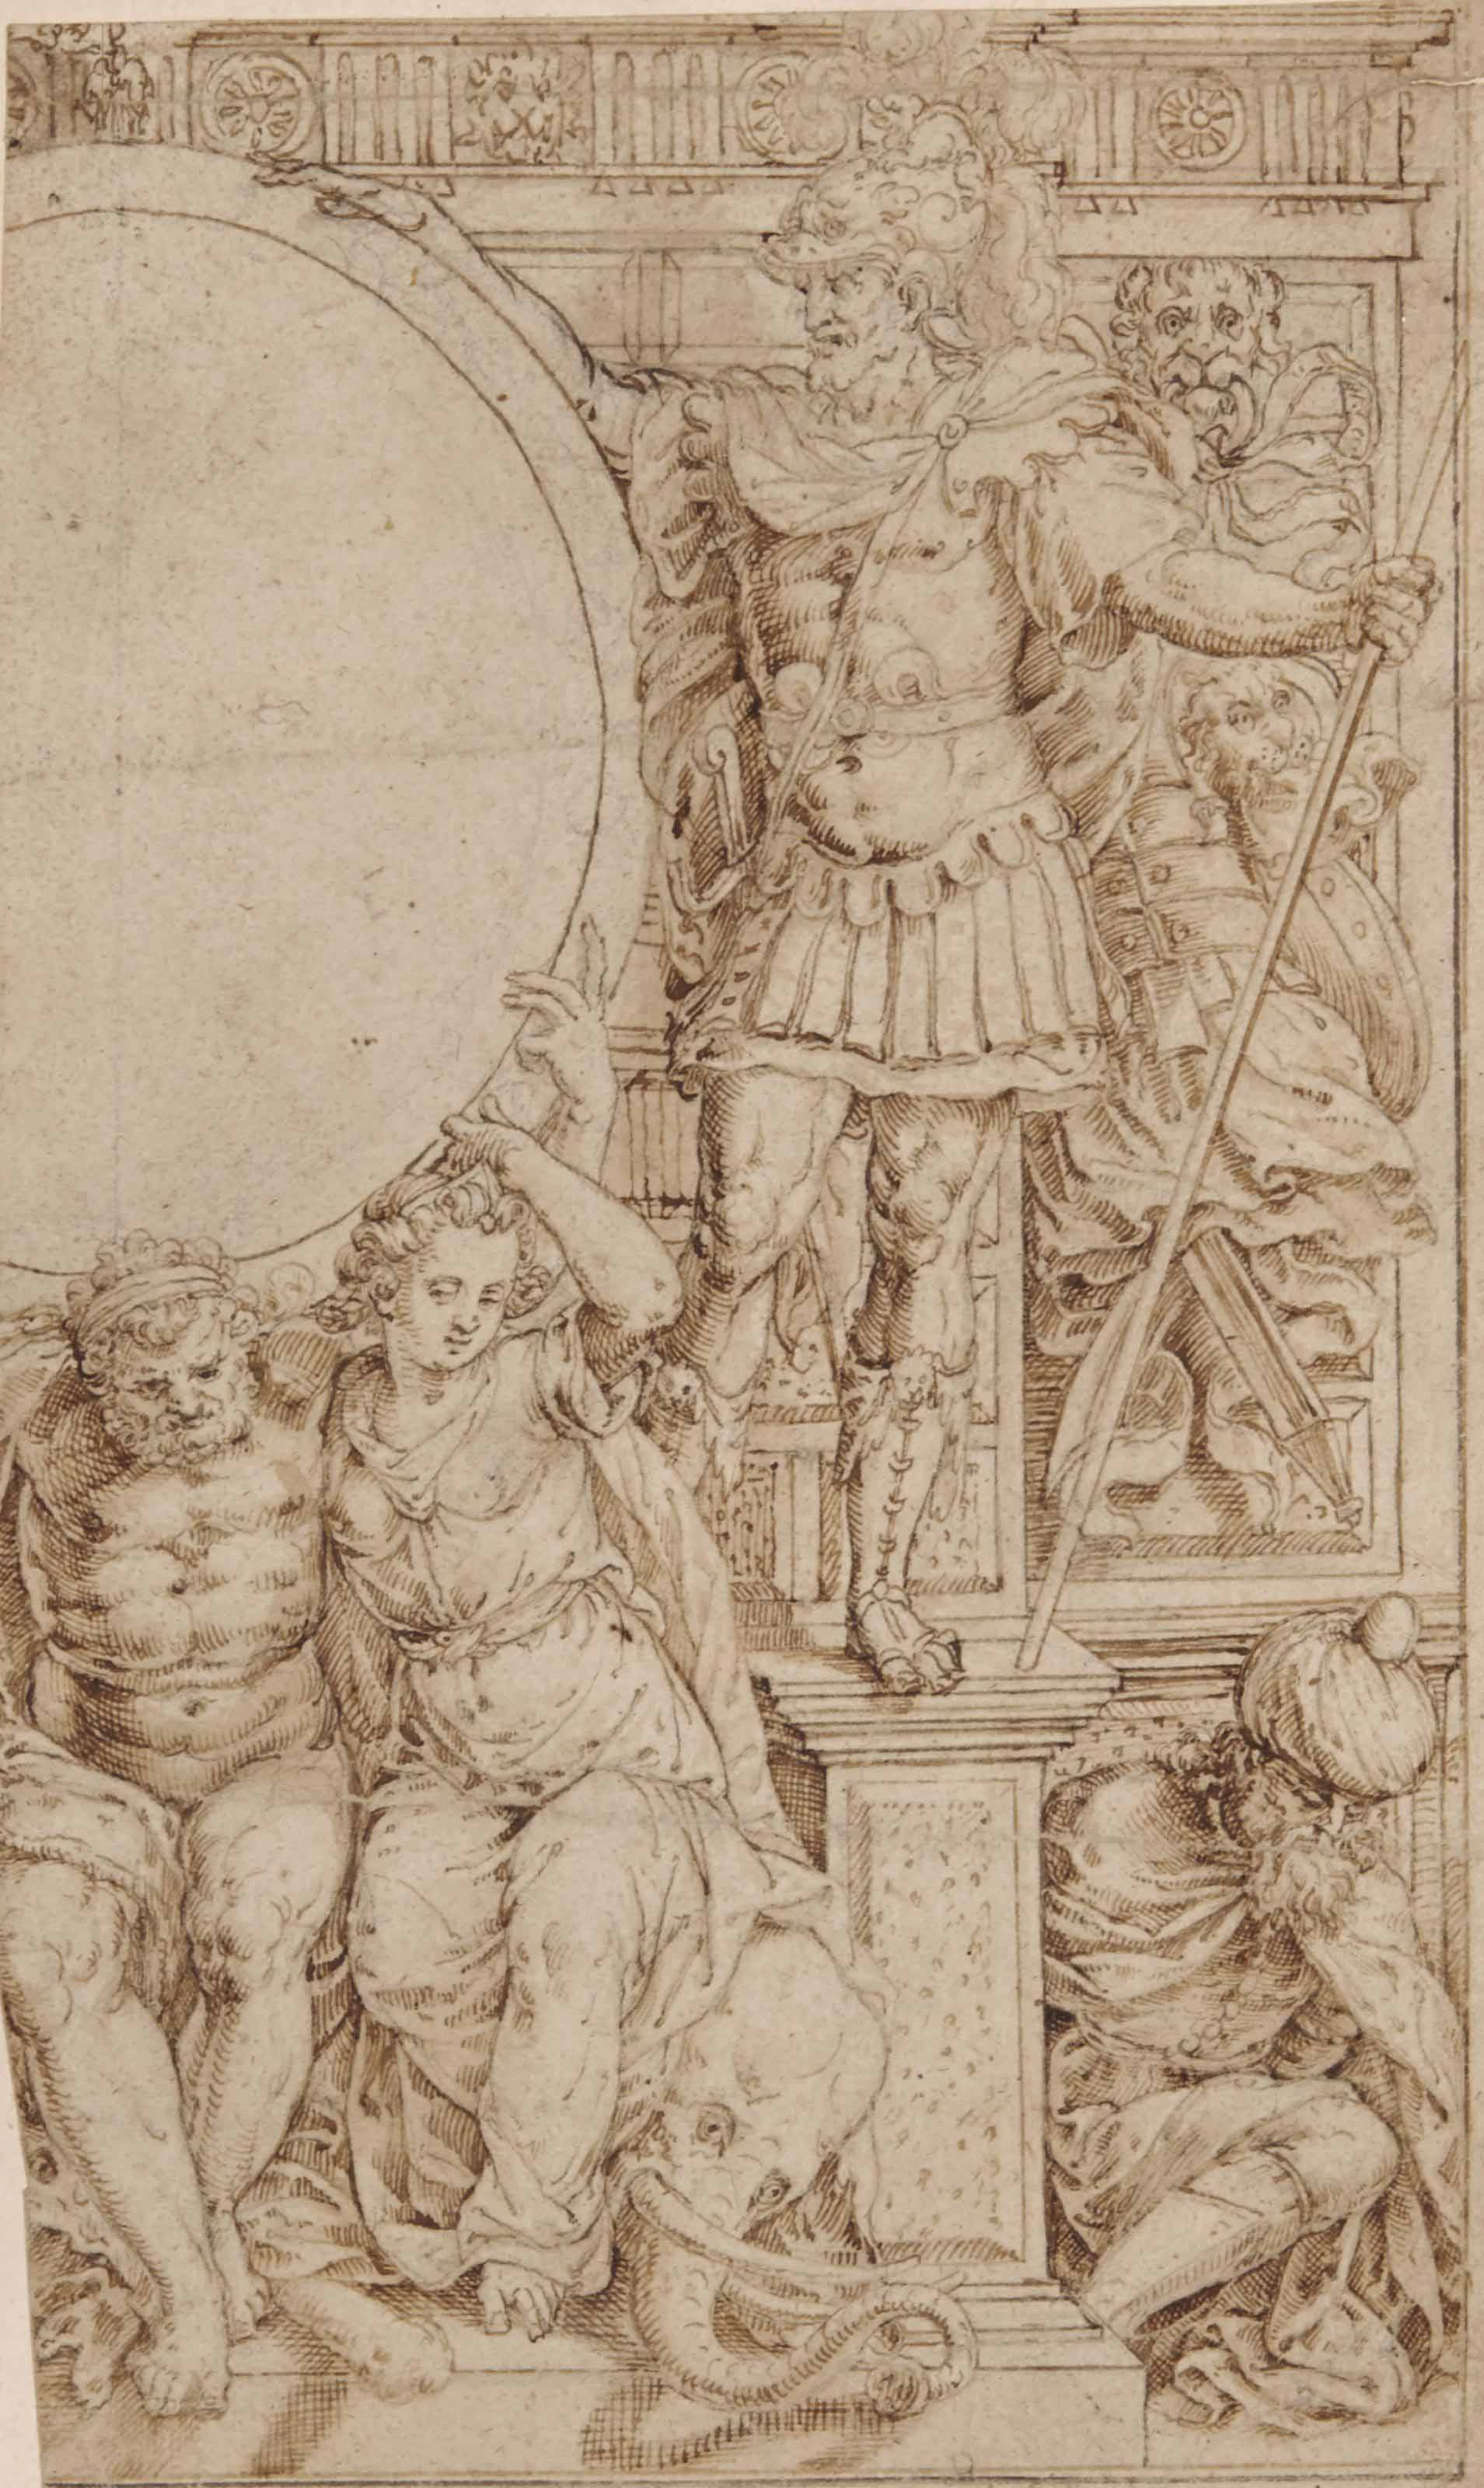 Study for a frontispiece with an allegory of victory over the Turks: A warrior holding a spear, a seated captive wearing a turban and allegorical figures seated on an elephant